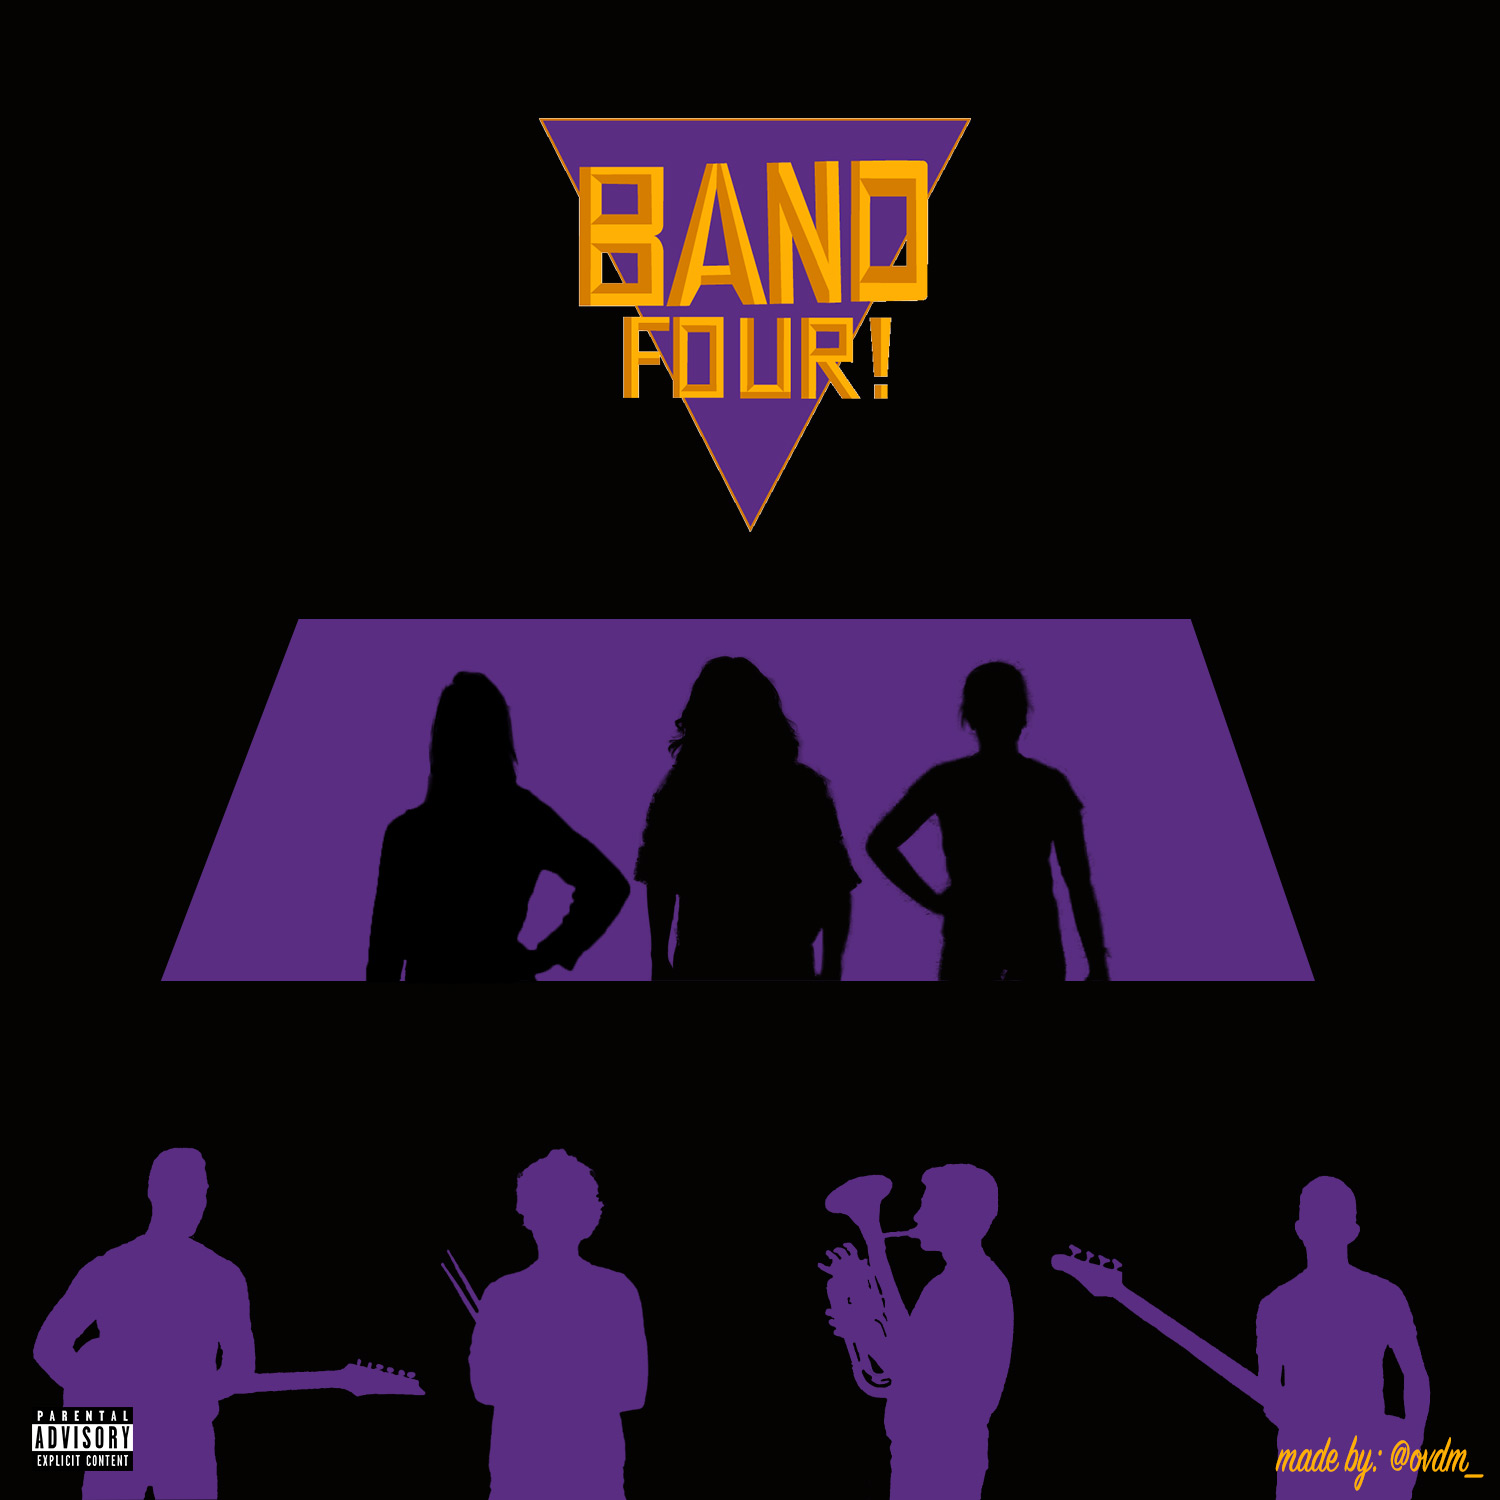 Band Four!